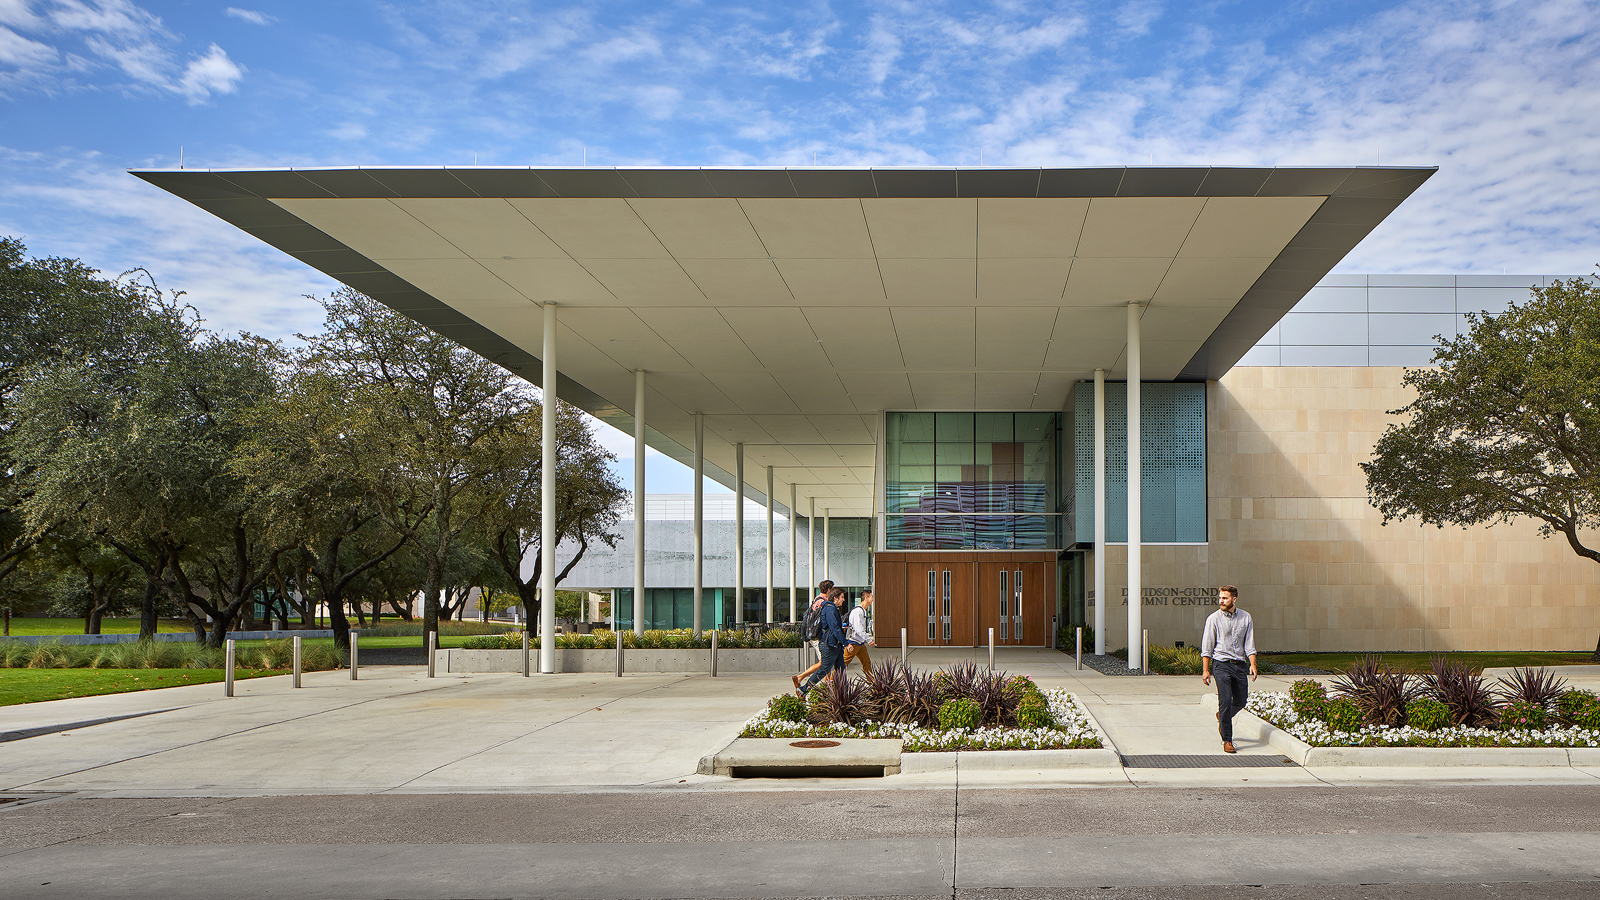 dror baldinger faia Architectural photography ut dallas alumni center stone metal canopy